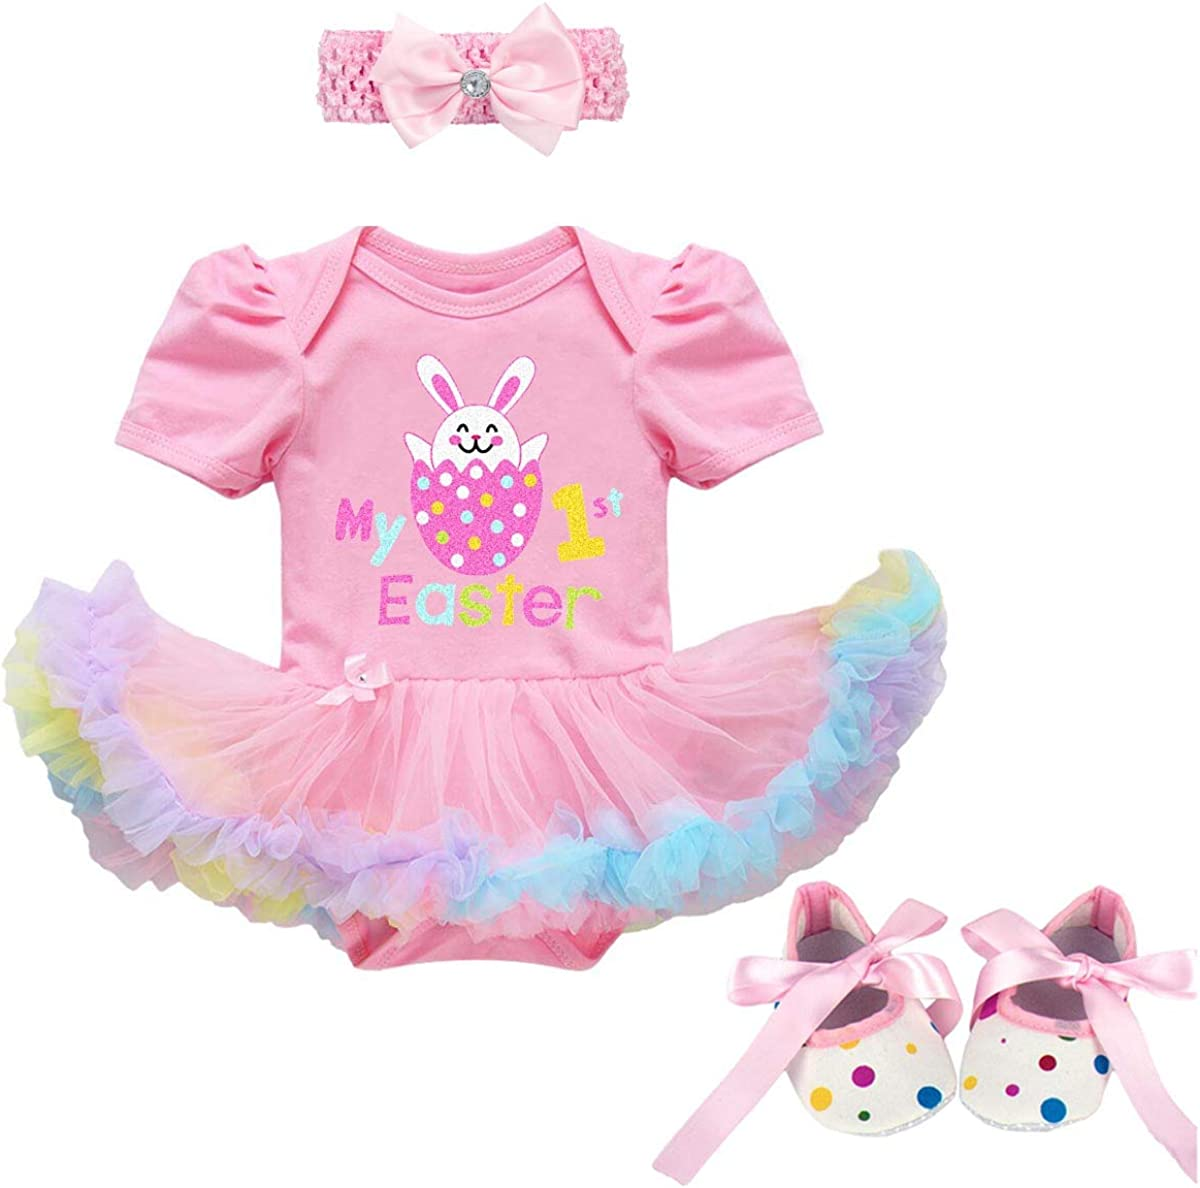 FYMNSI Newborn Baby Girl 1st Easter Outfit Infant Toddler Kids My First Easter Party Costume Princess Tutu Romper Dress Bunny Egg Print Short Sleeve Bodysuit Headband Shoes 3pcs Clothes Set Photo Prop